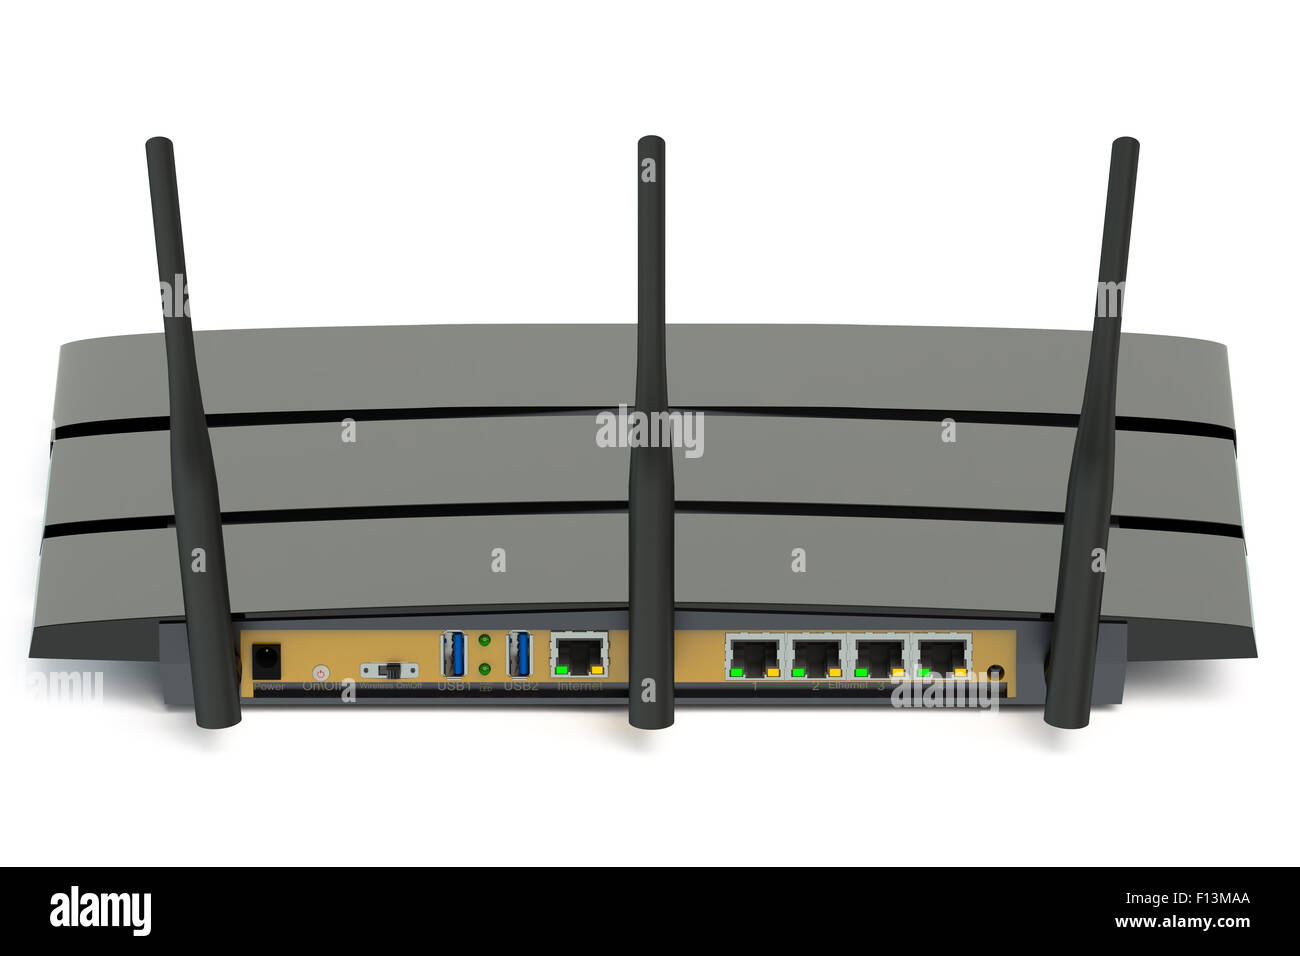 Router Stockfotos & Router Bilder - Alamy